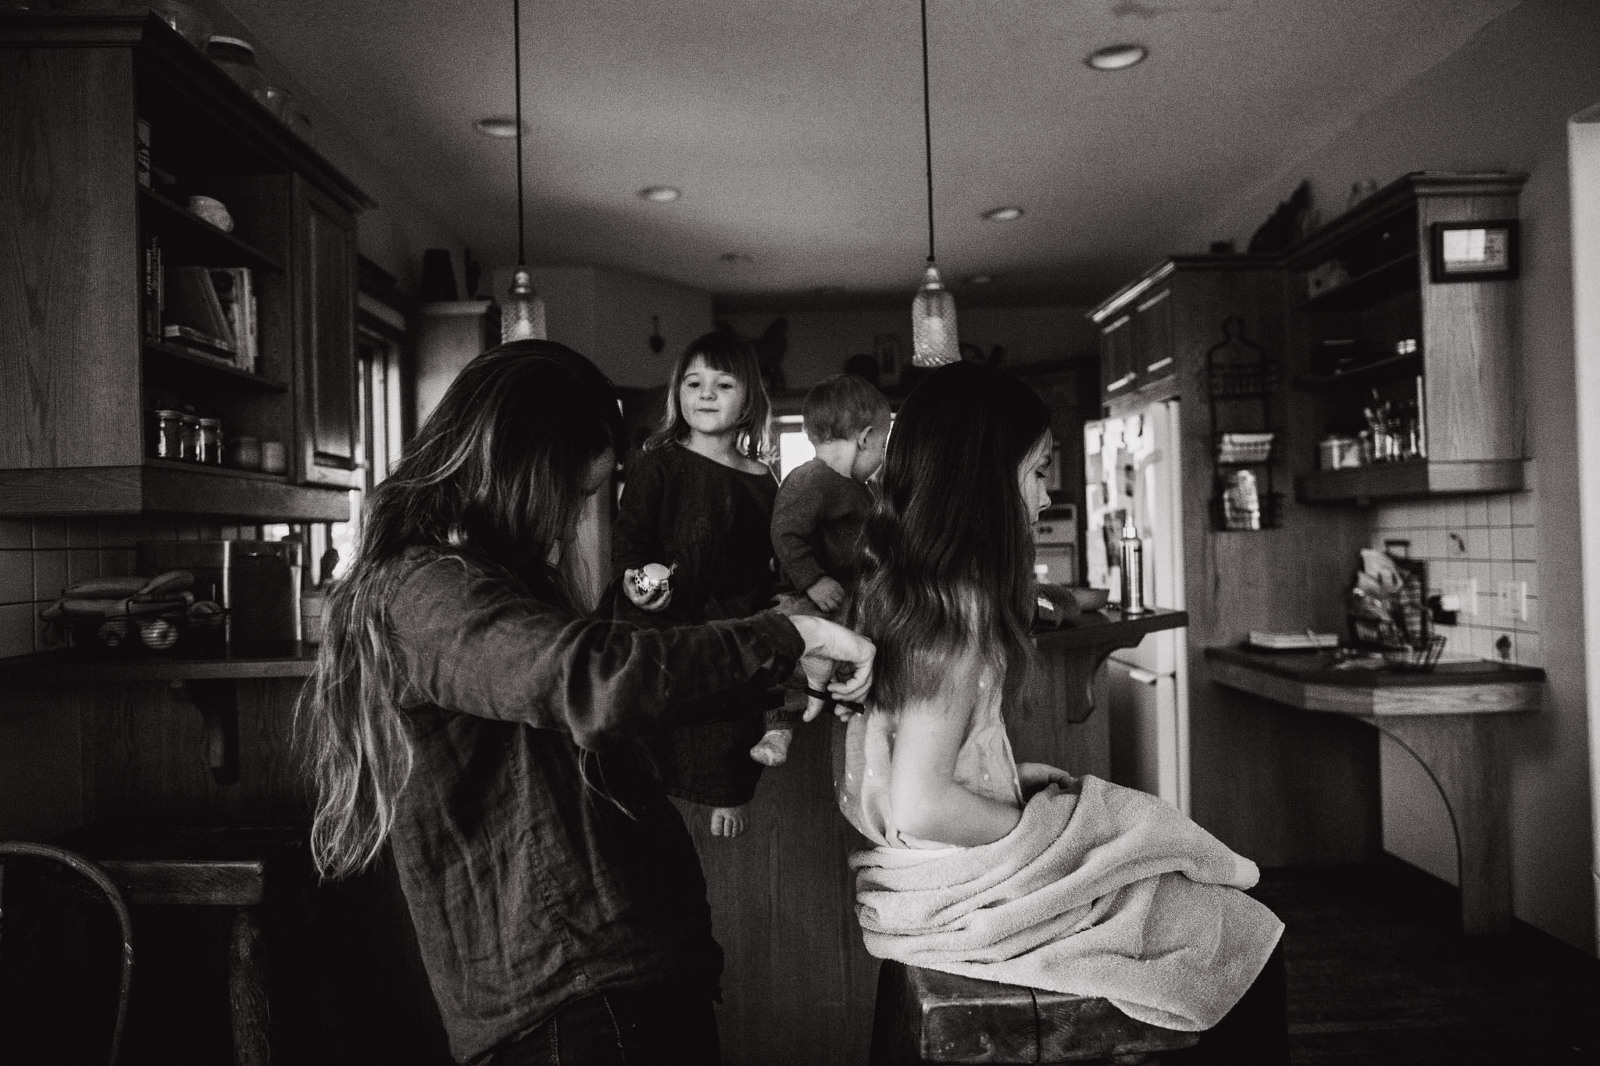 mom trims her daughter's hair in the kitchen